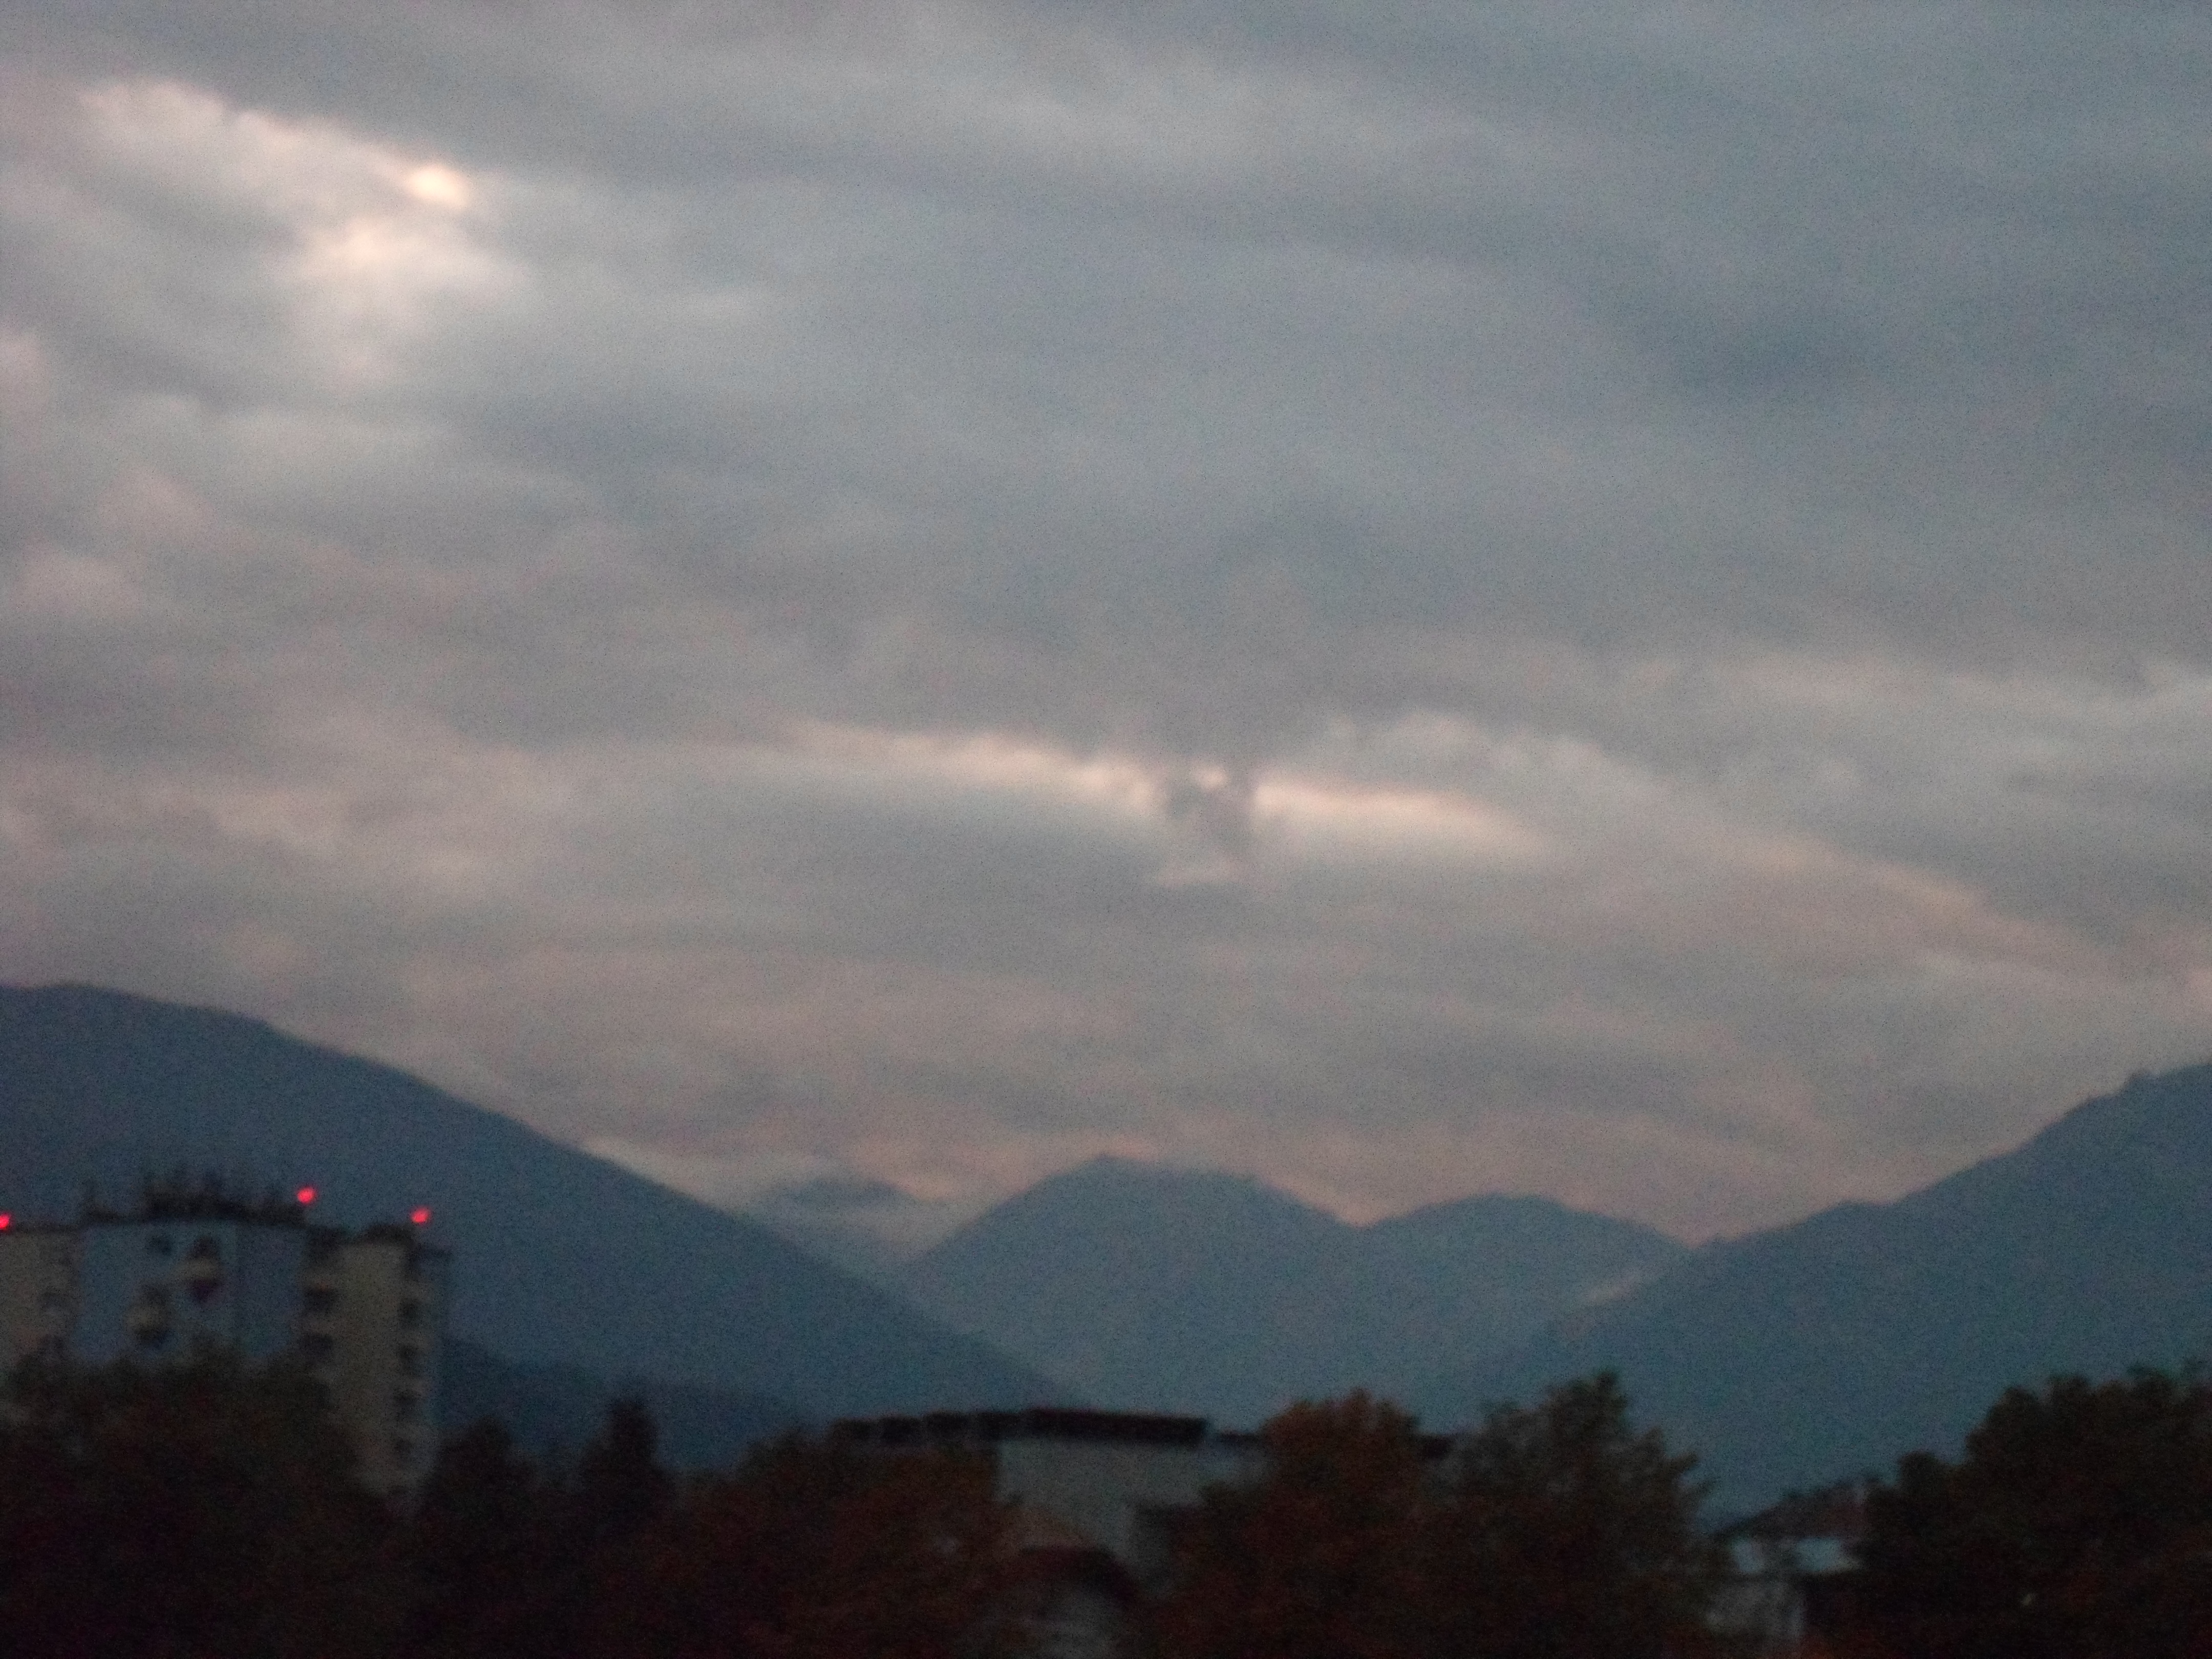 Photo of a cloudy grey sky over dark hills with a perfectly square cloud in front of the others